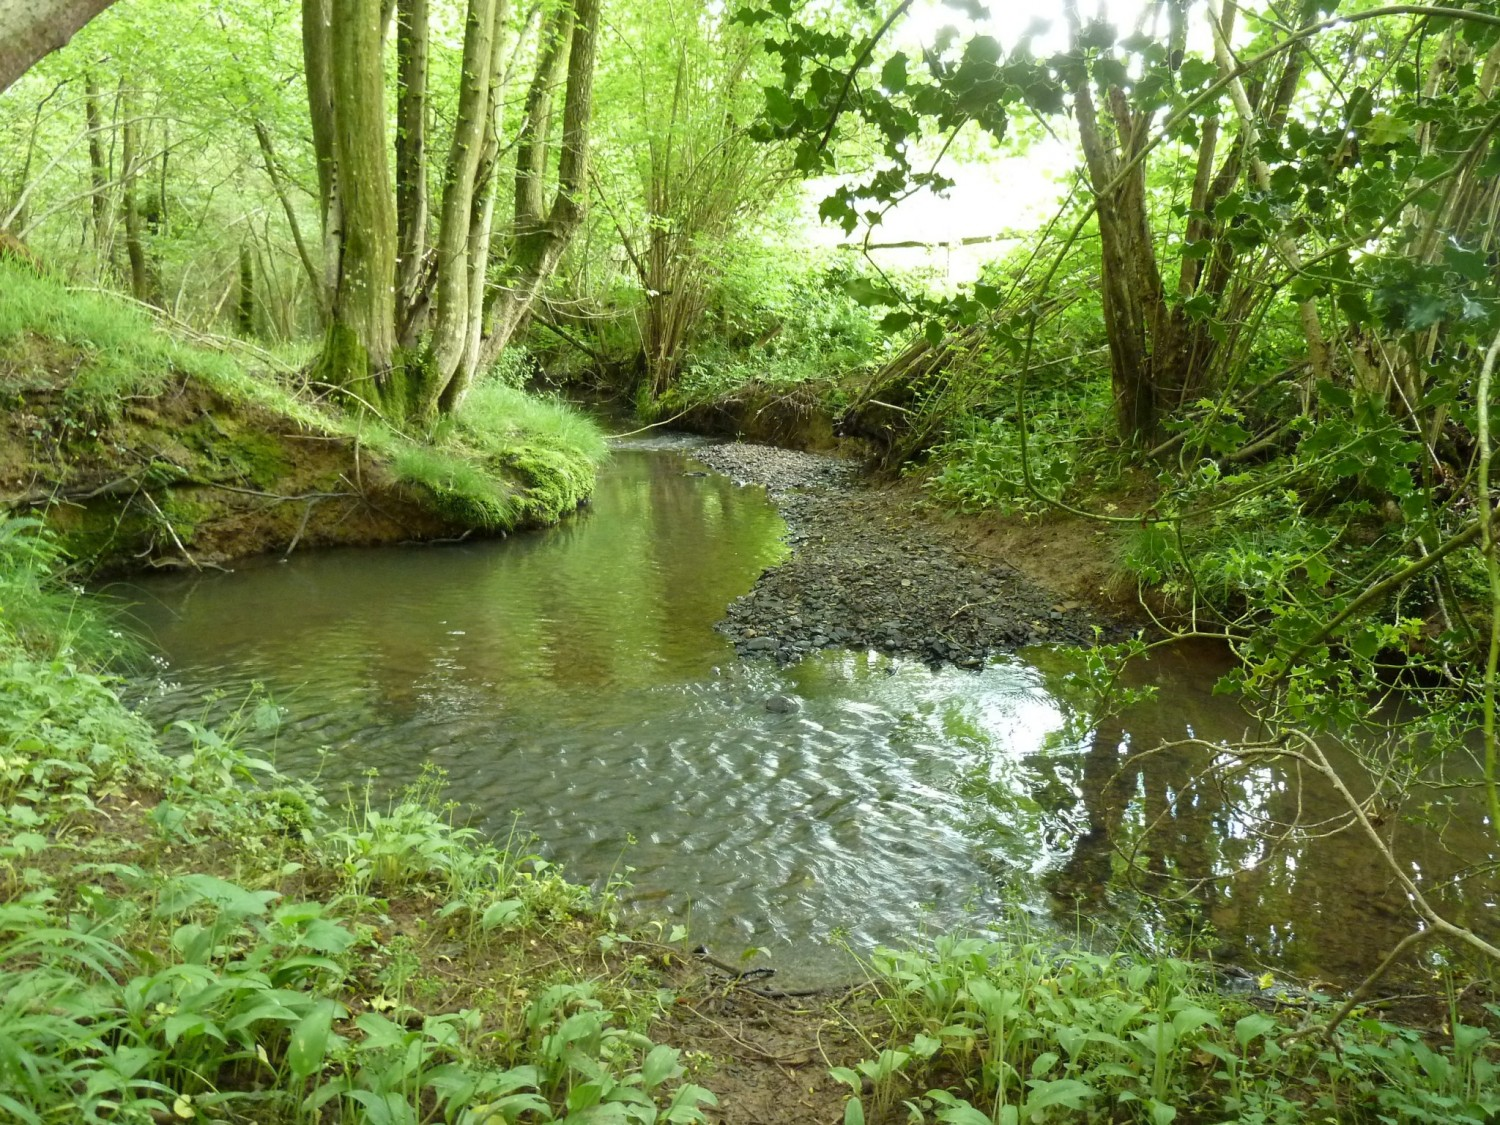 The Shortbridge Stream